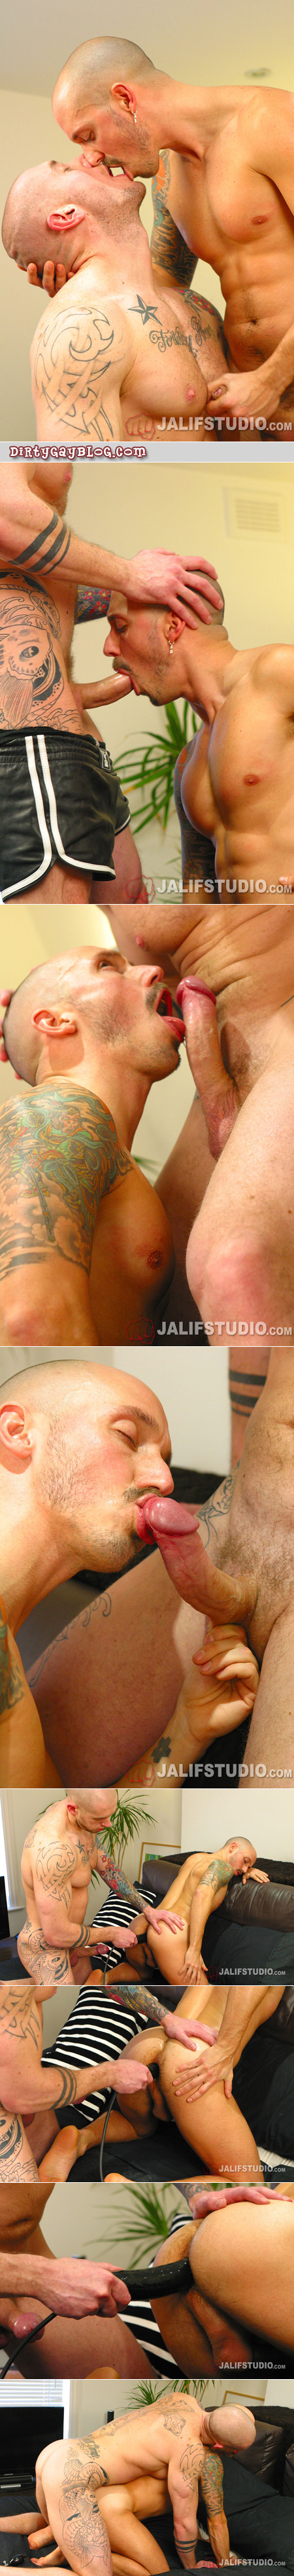 Tattooed hunk stretches out a muscle stud hole with a dildo before double-fucking him.